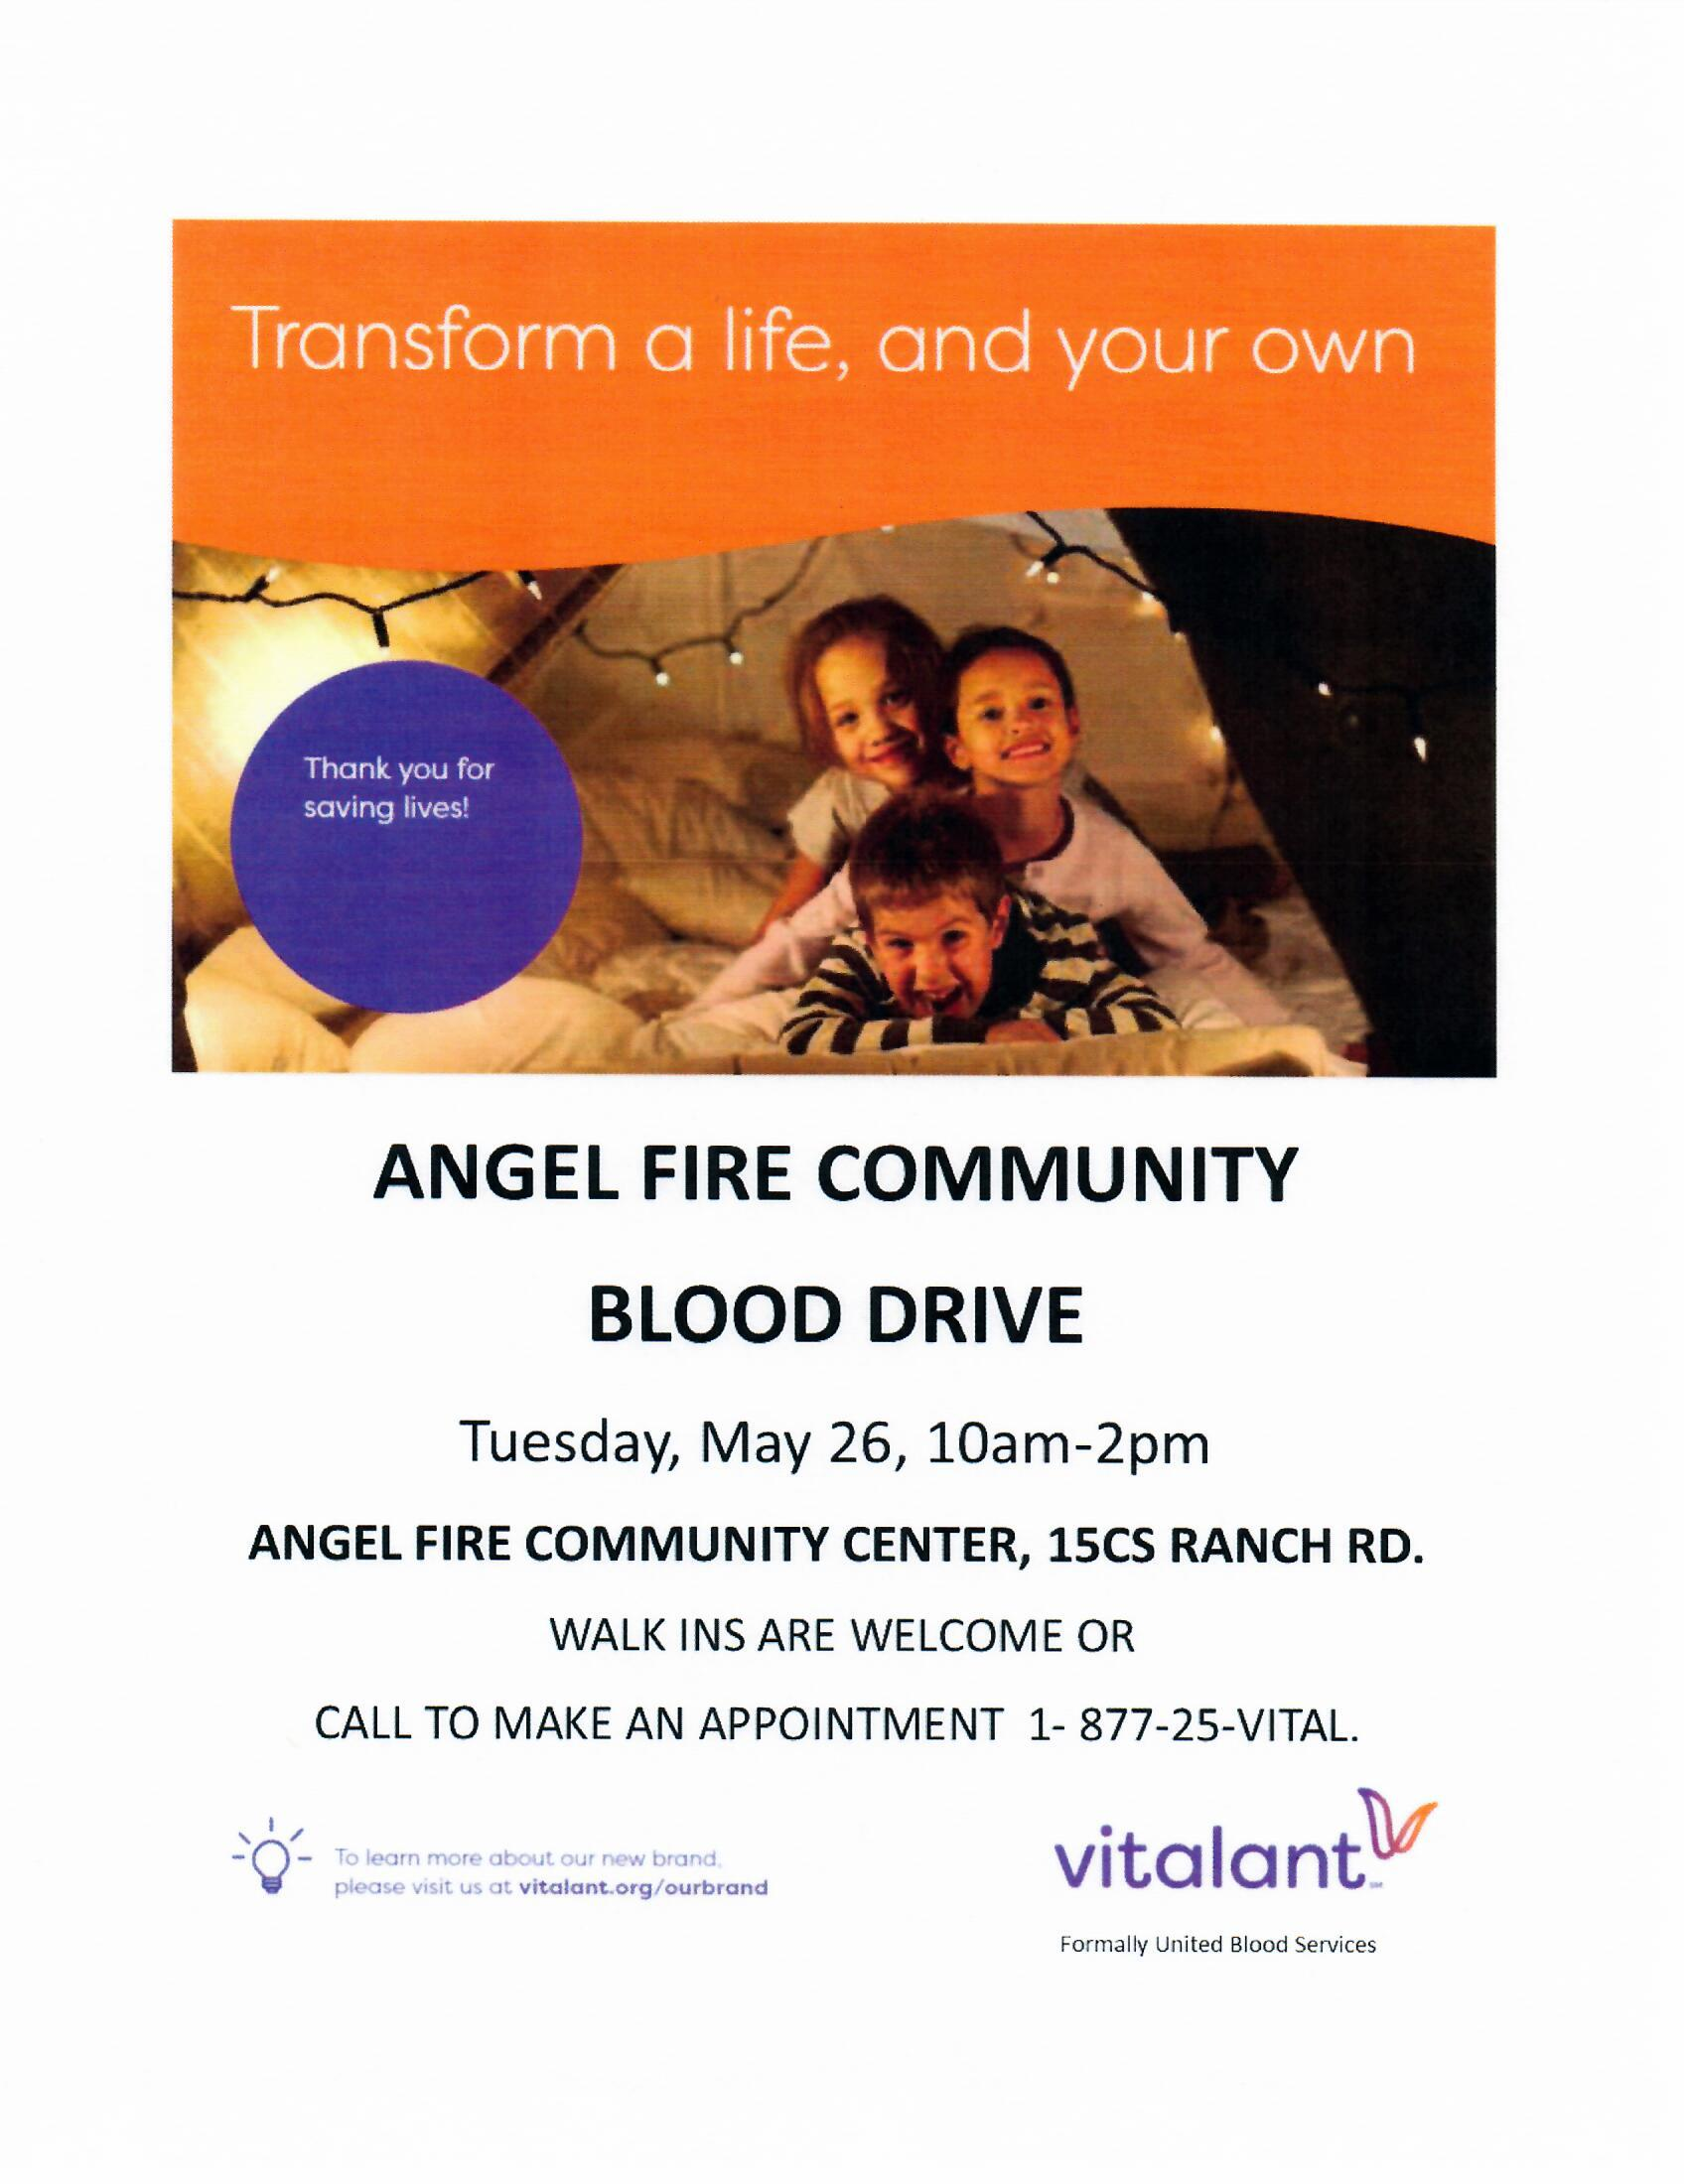 Blood Drive at the Community Center flyer 05.26.2020